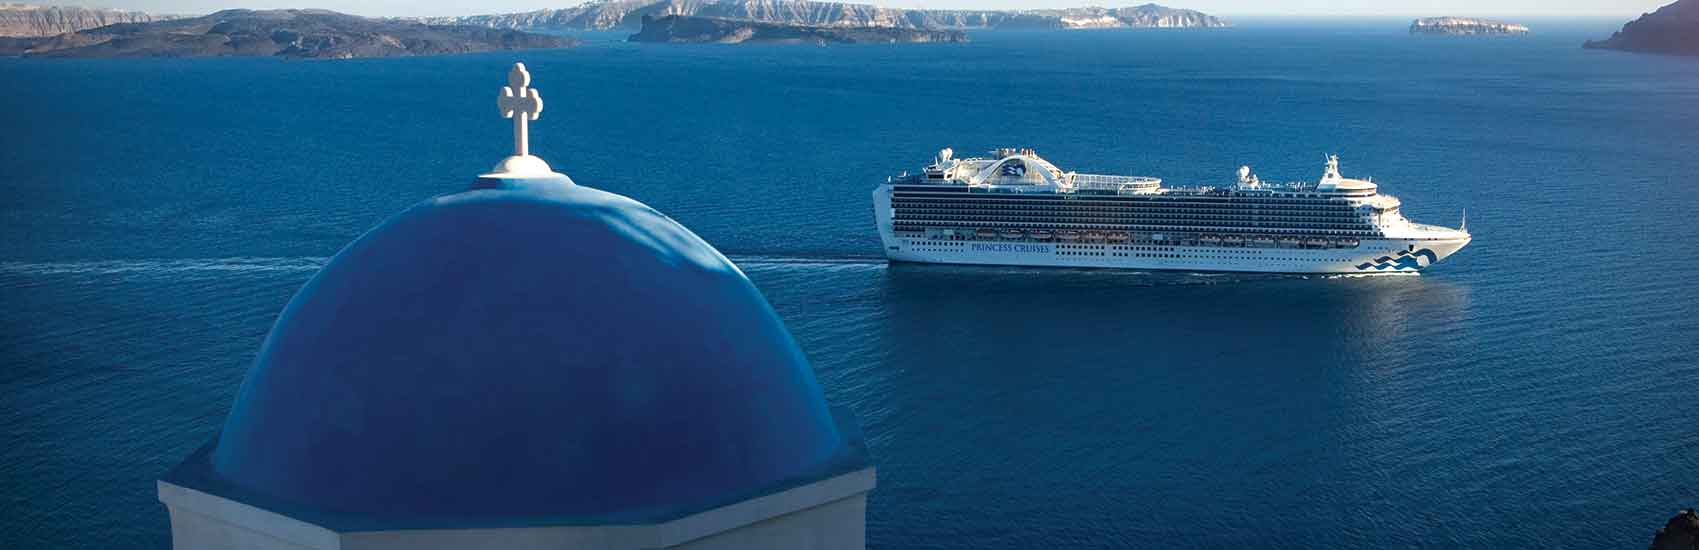 Aubaine en direct de Princess Cruises 3